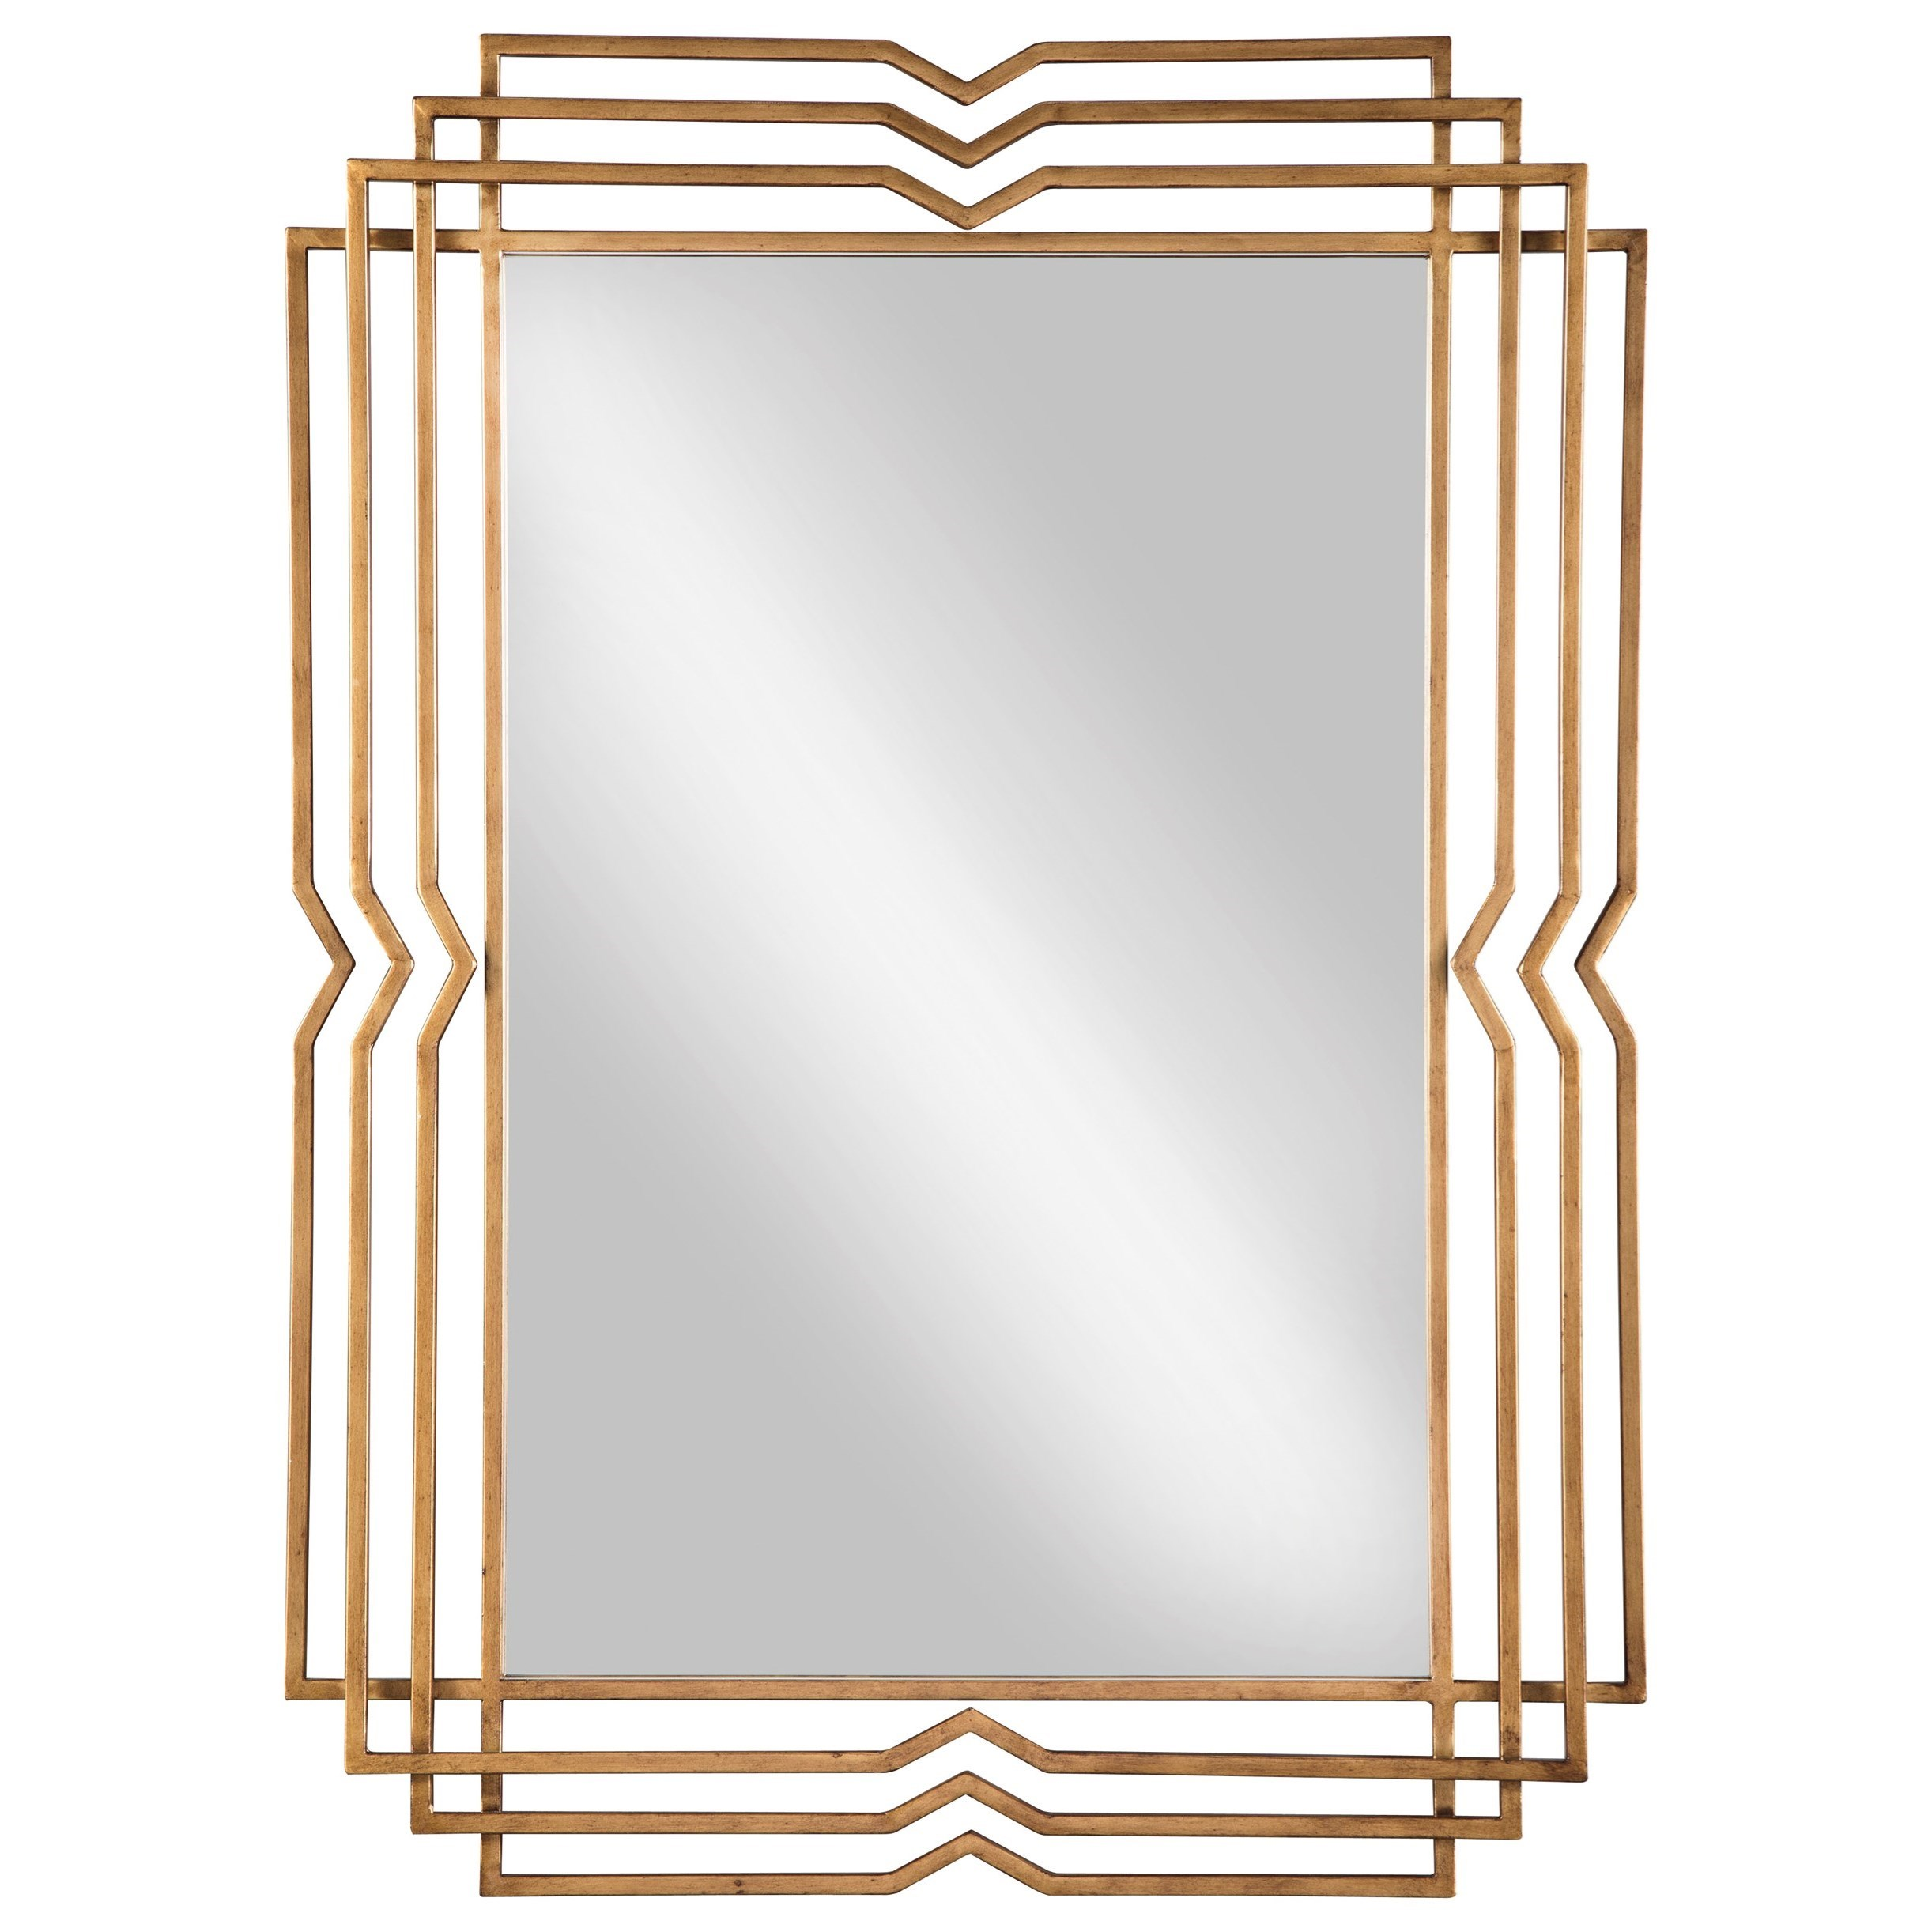 Signature Design by Ashley Accent Mirrors Tracey Antique Gold Finish Accent Mirror - Item Number: A8010105